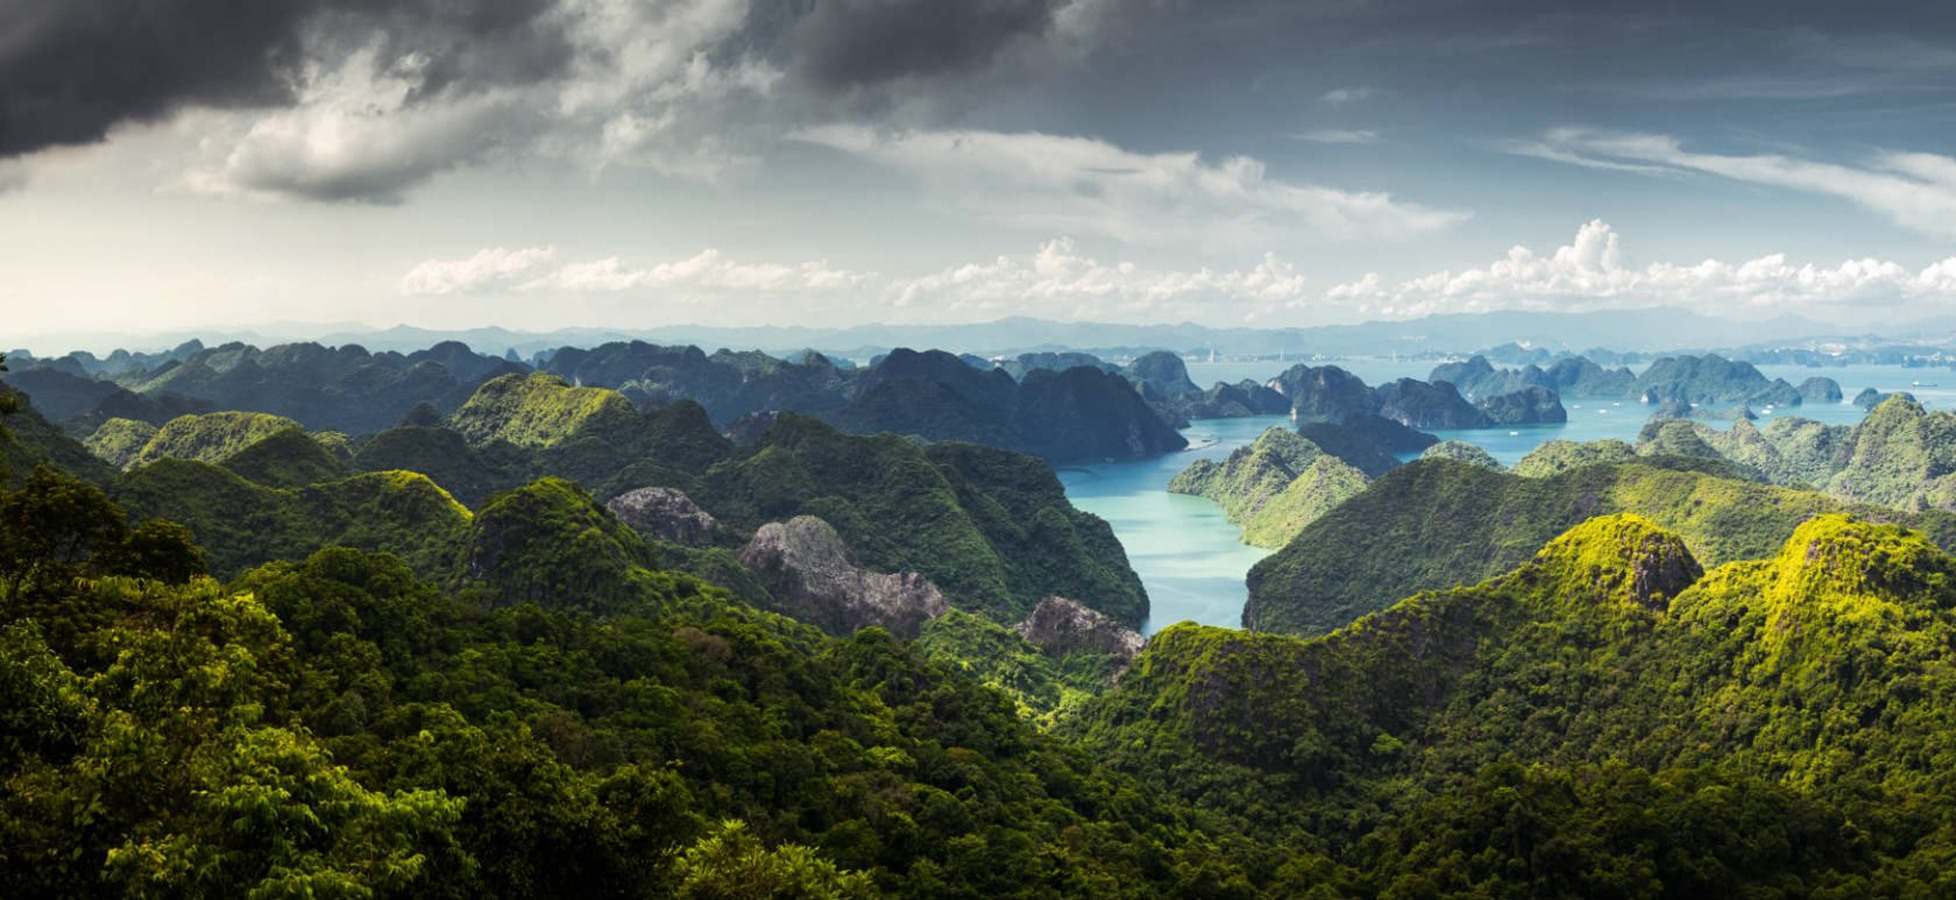 The national park occupies half of the area of Cat Ba. It is considered as a heaven of walking, jogging, climbing and kayaking.